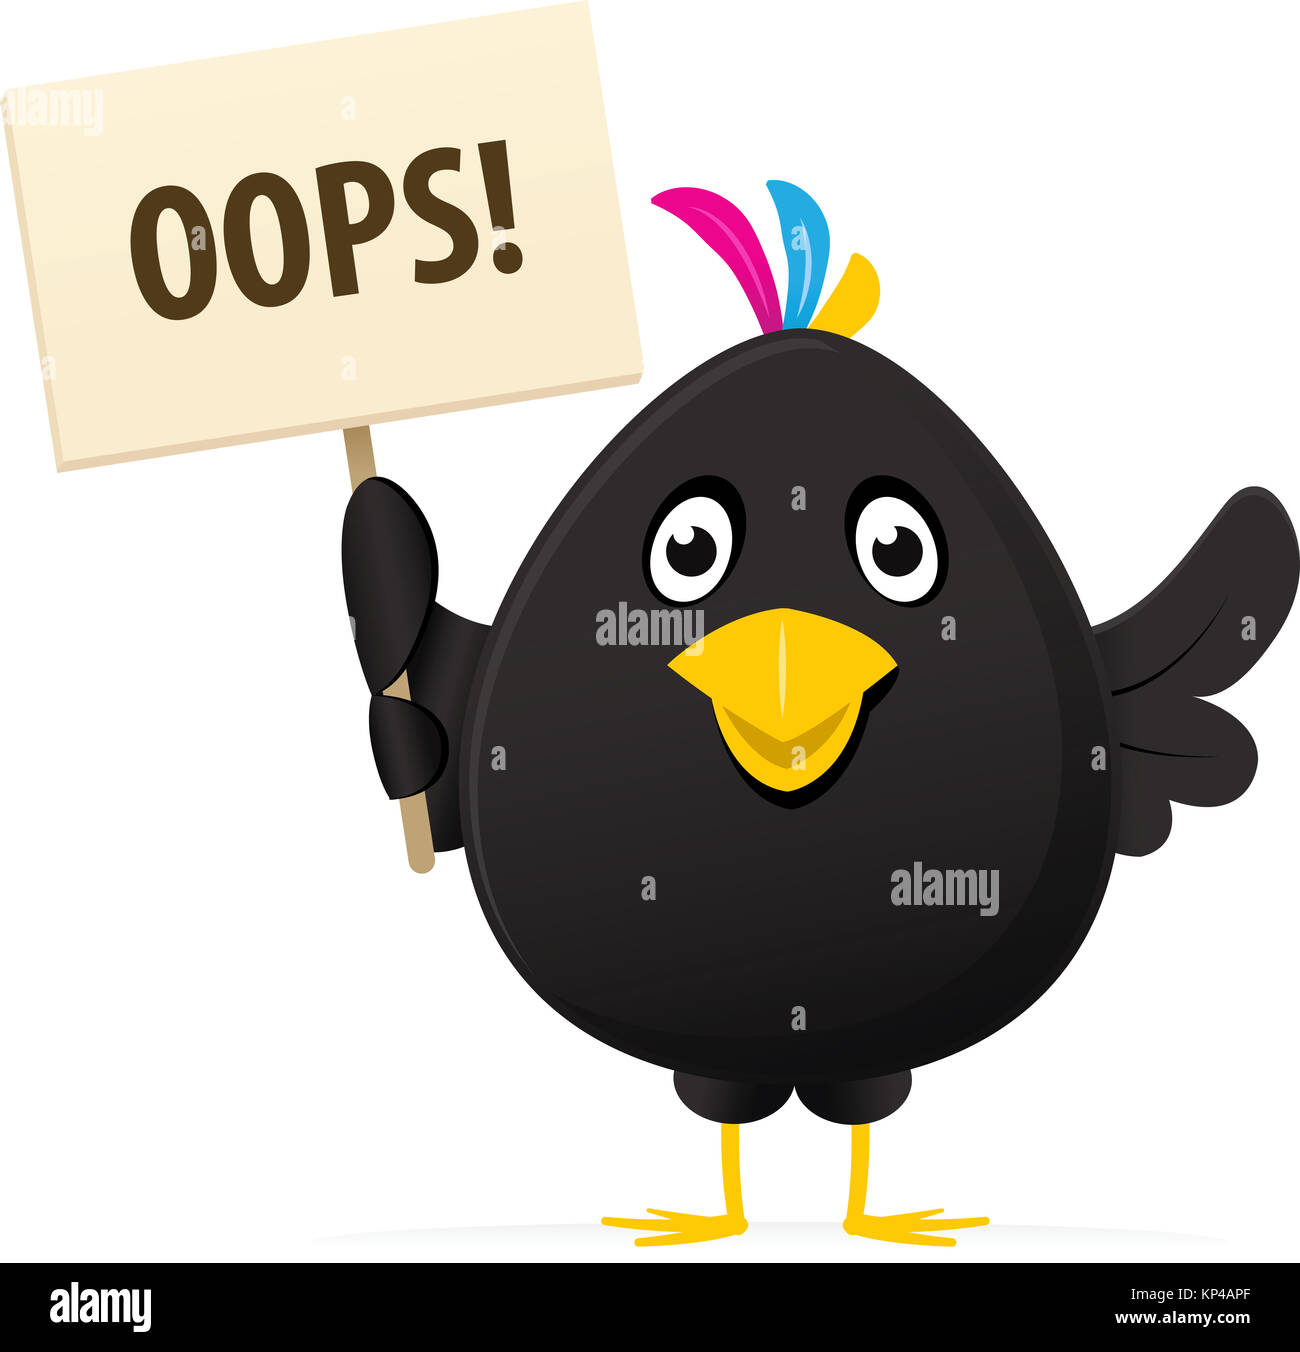 illustrated image of a black bird holding a oops placard - Stock Image